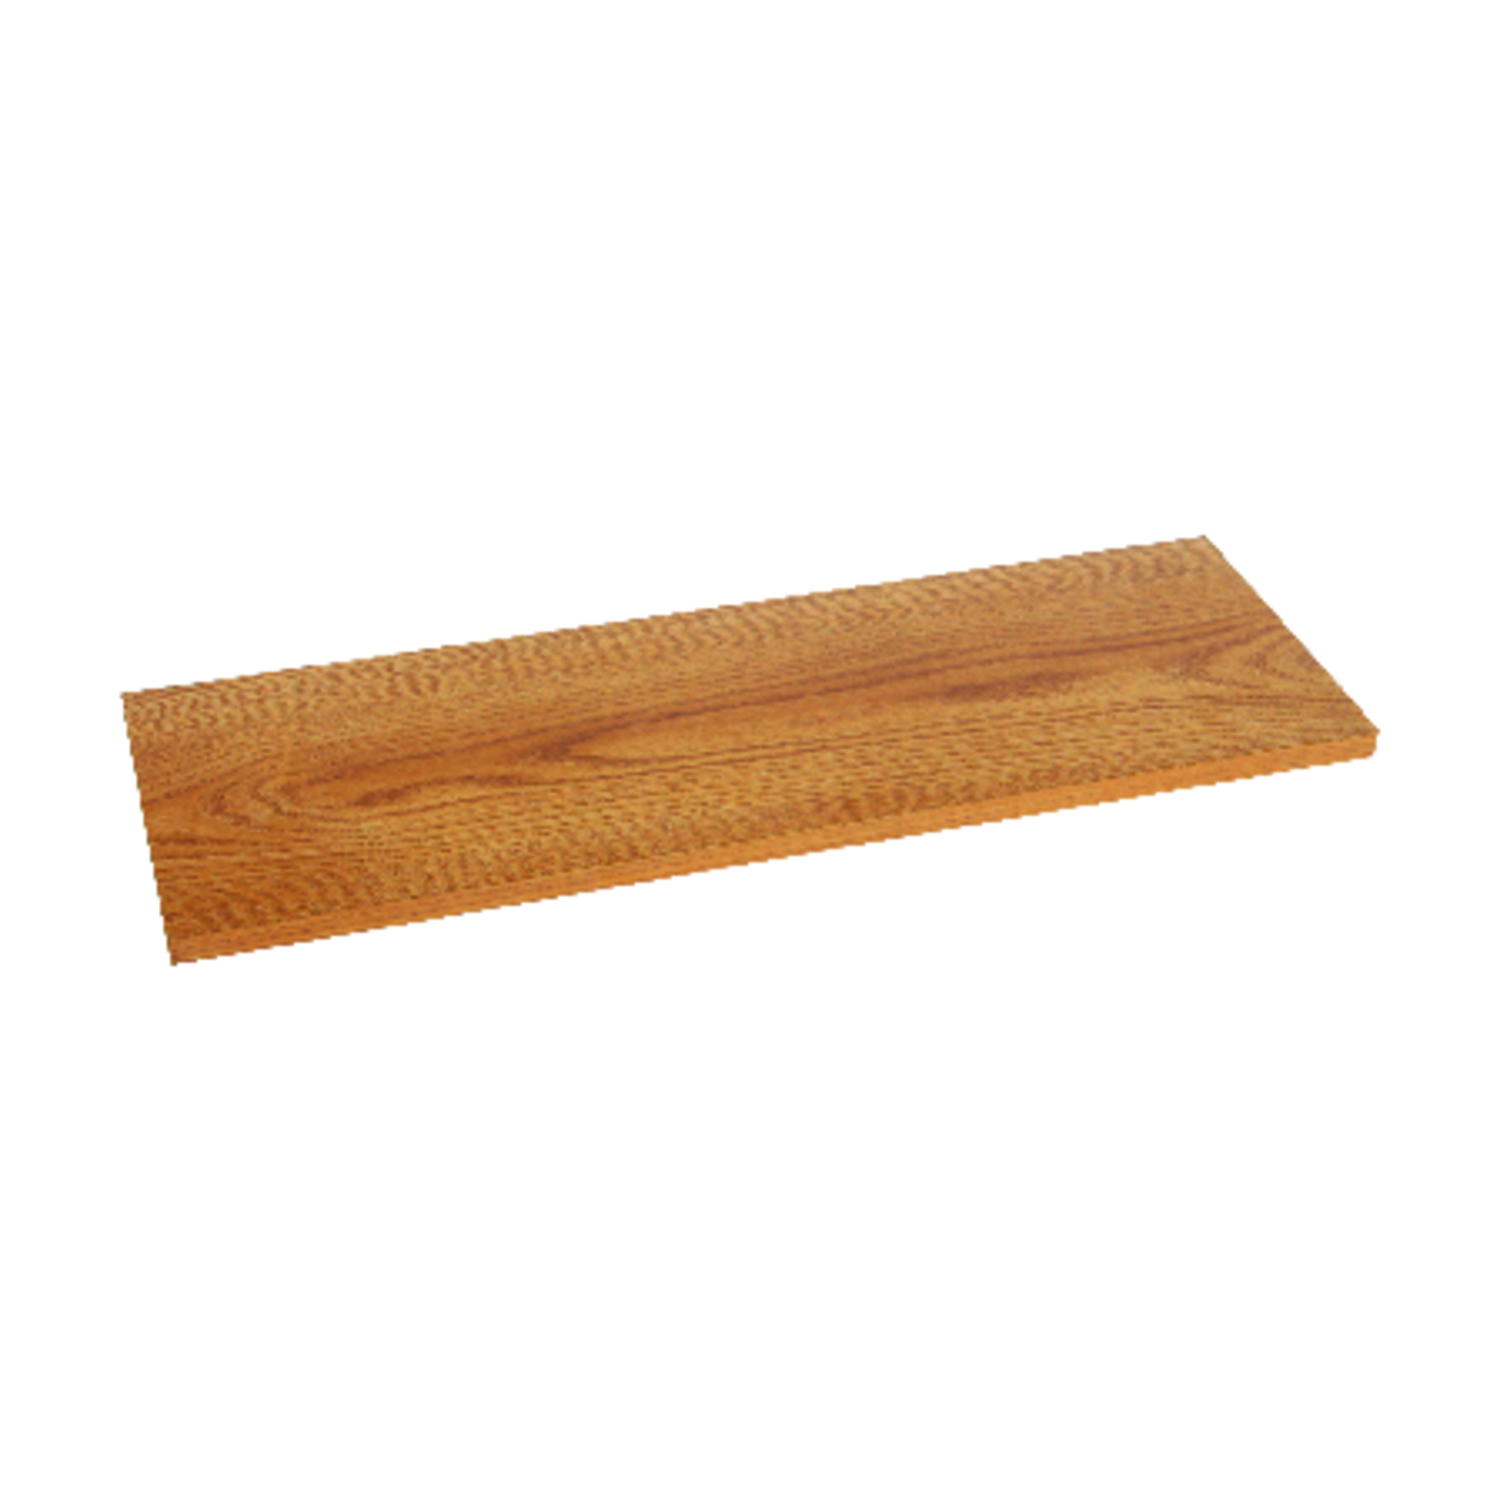 Knape & Vogt  8 in. W x 48 in. D x 8 in. H Oak  Shelf Board  Melatex Laminate/Particle Board